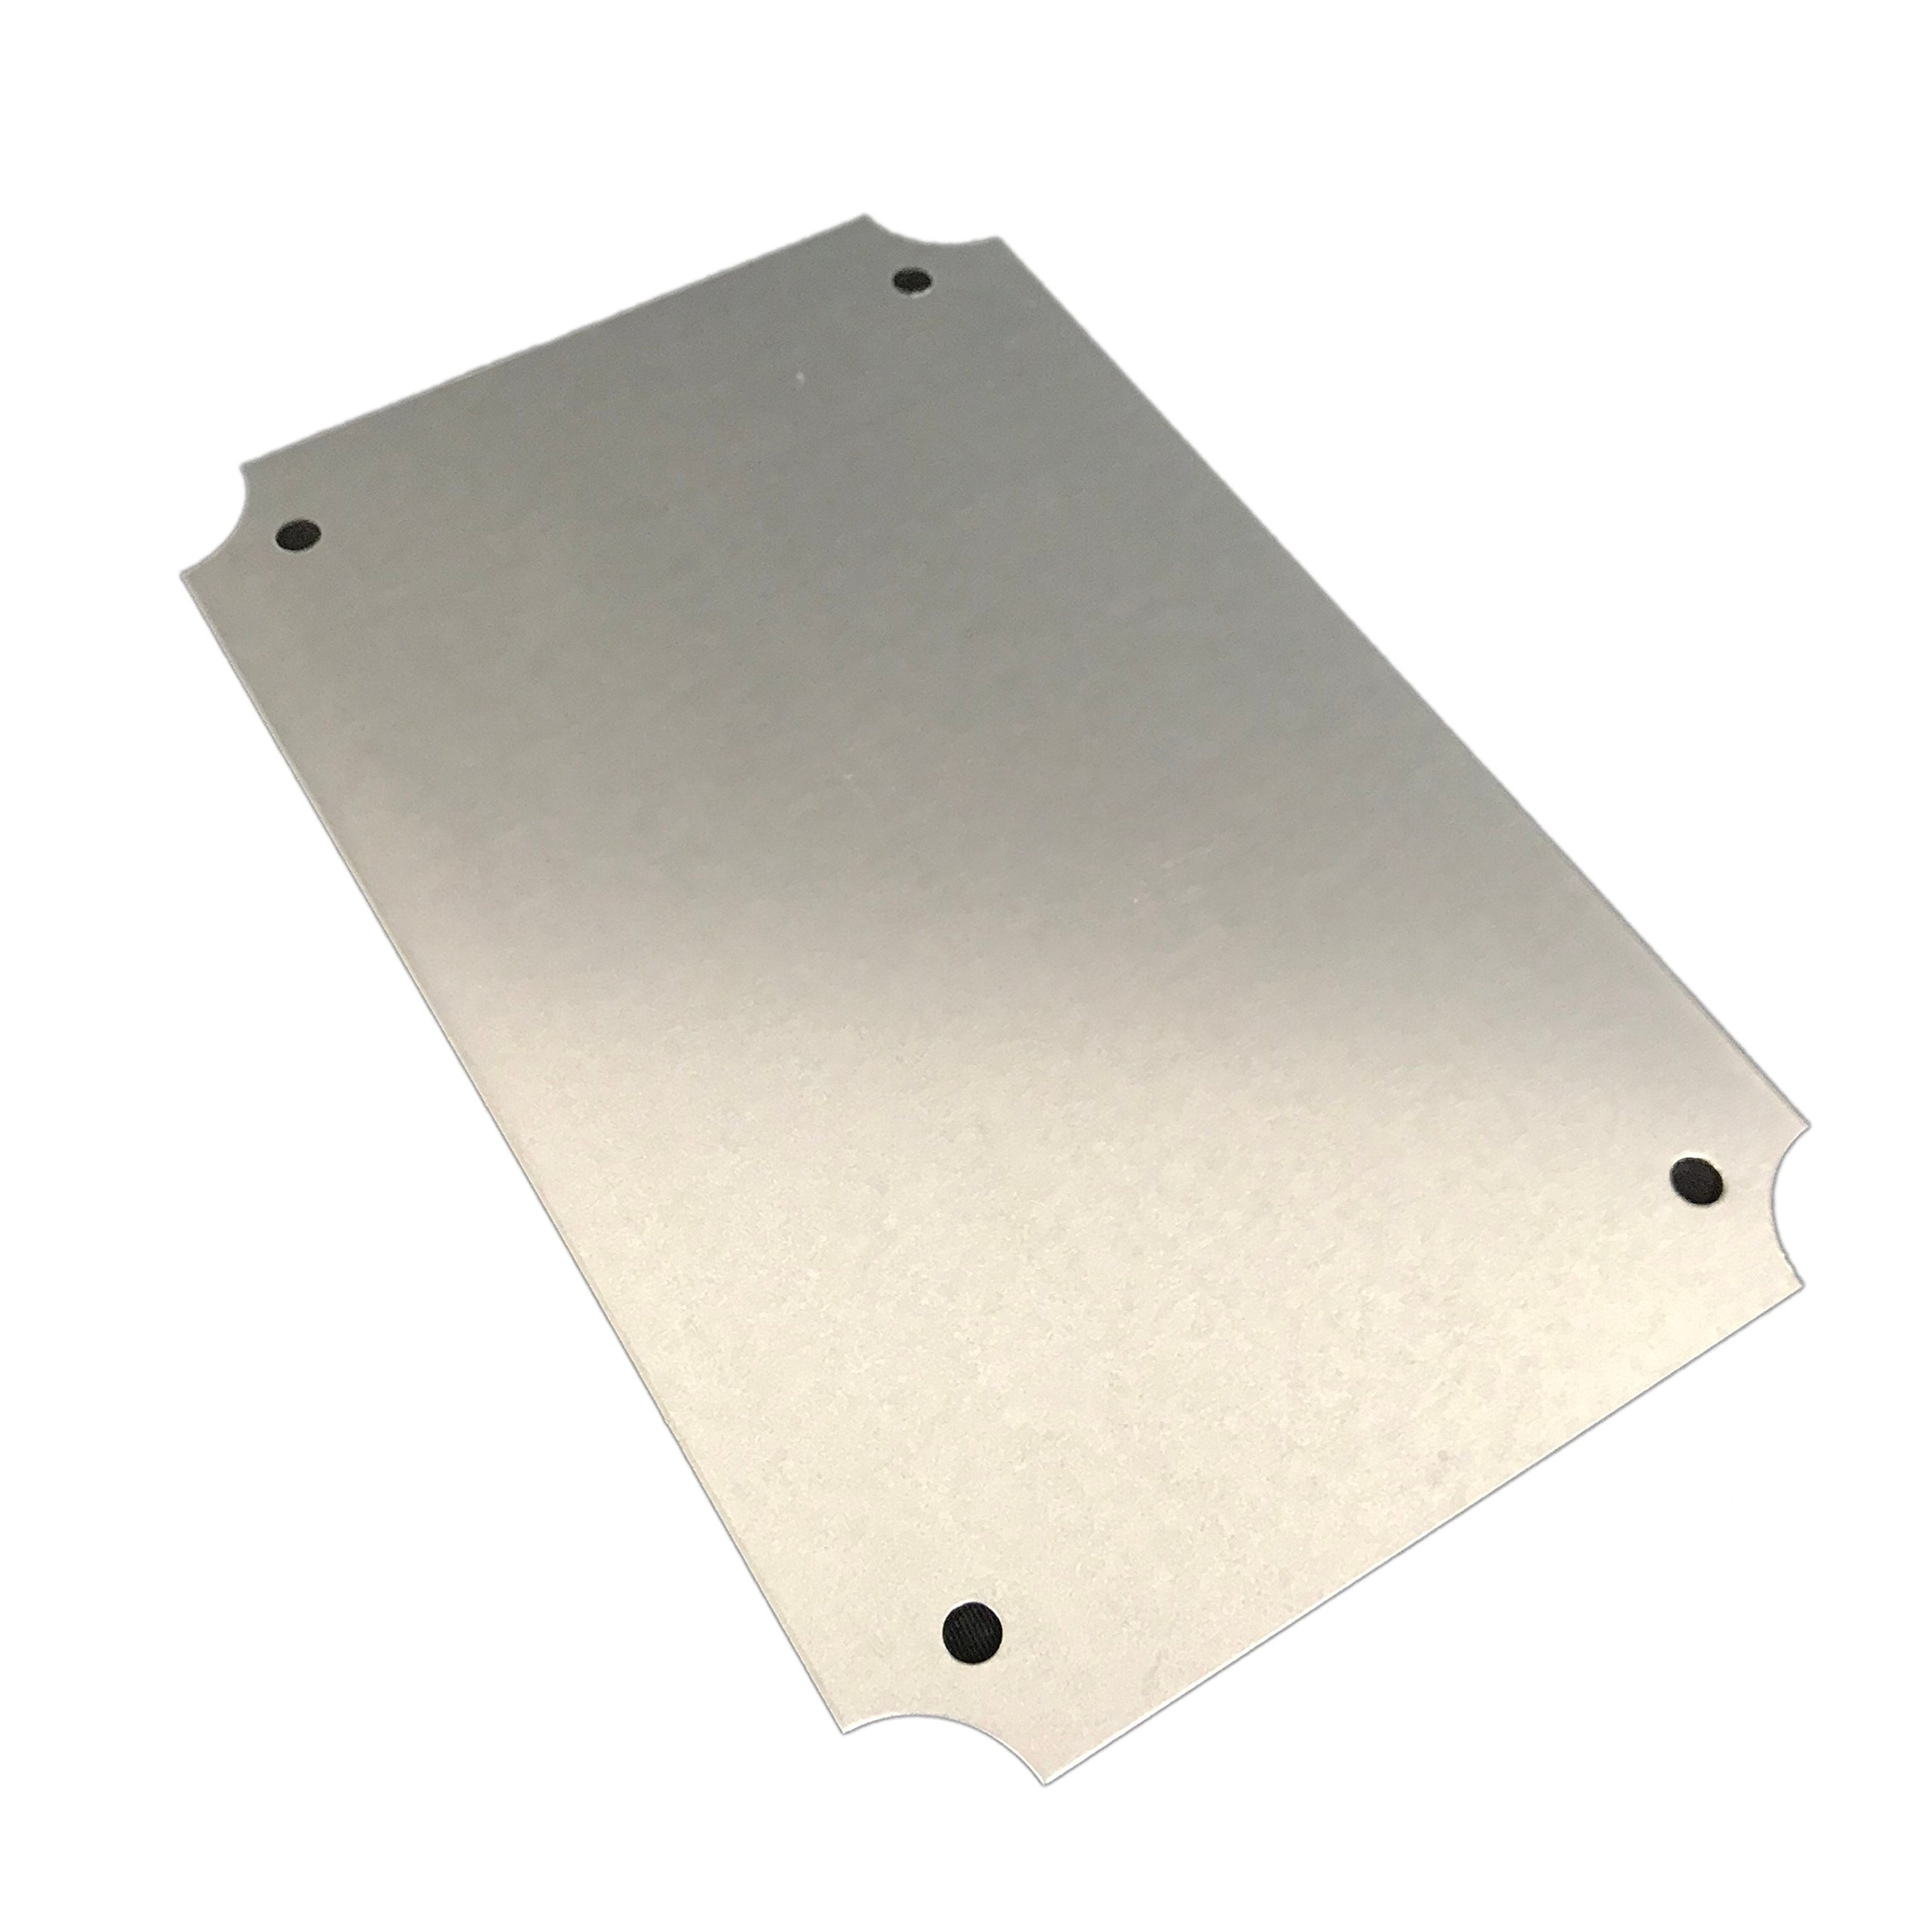 Bud Industries Steel Internal Panel – NBX-32908 Heavy Duty Electric Panel, Thick Console, Internal Mounting Hardware. Galvanized Steel Industrial Electrical Board